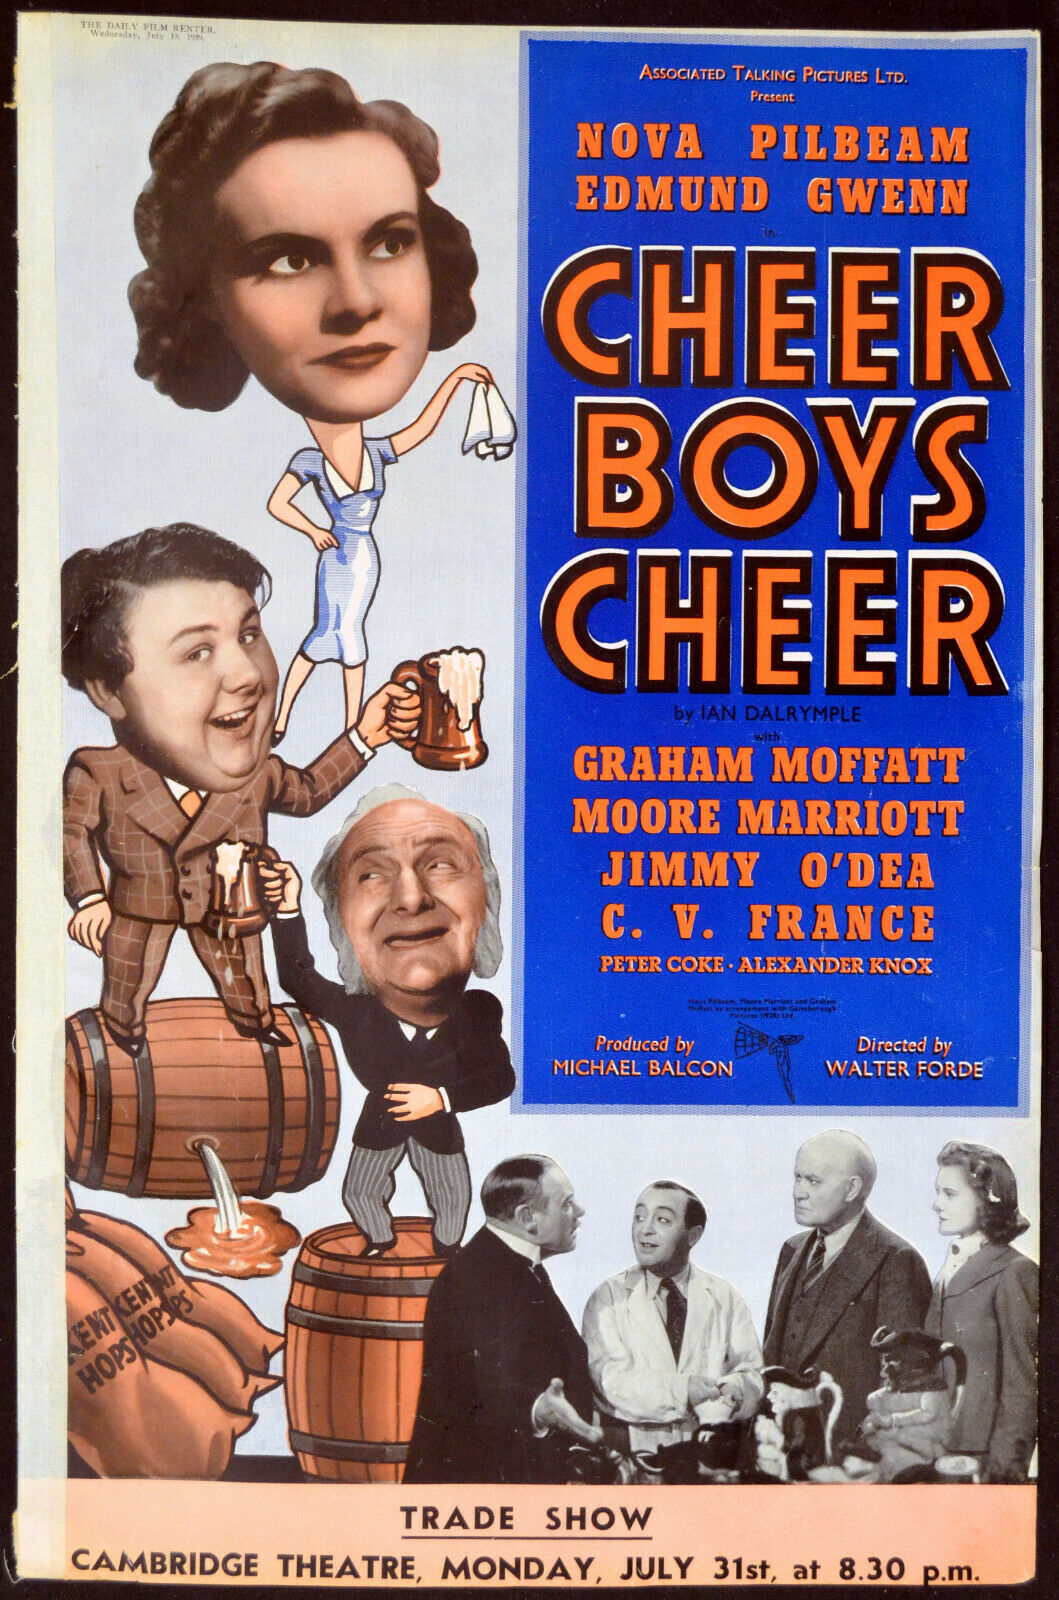 Cheer Boys Cheer(1939) The Daily Film Renter, July 19, 1939, UK trade ad